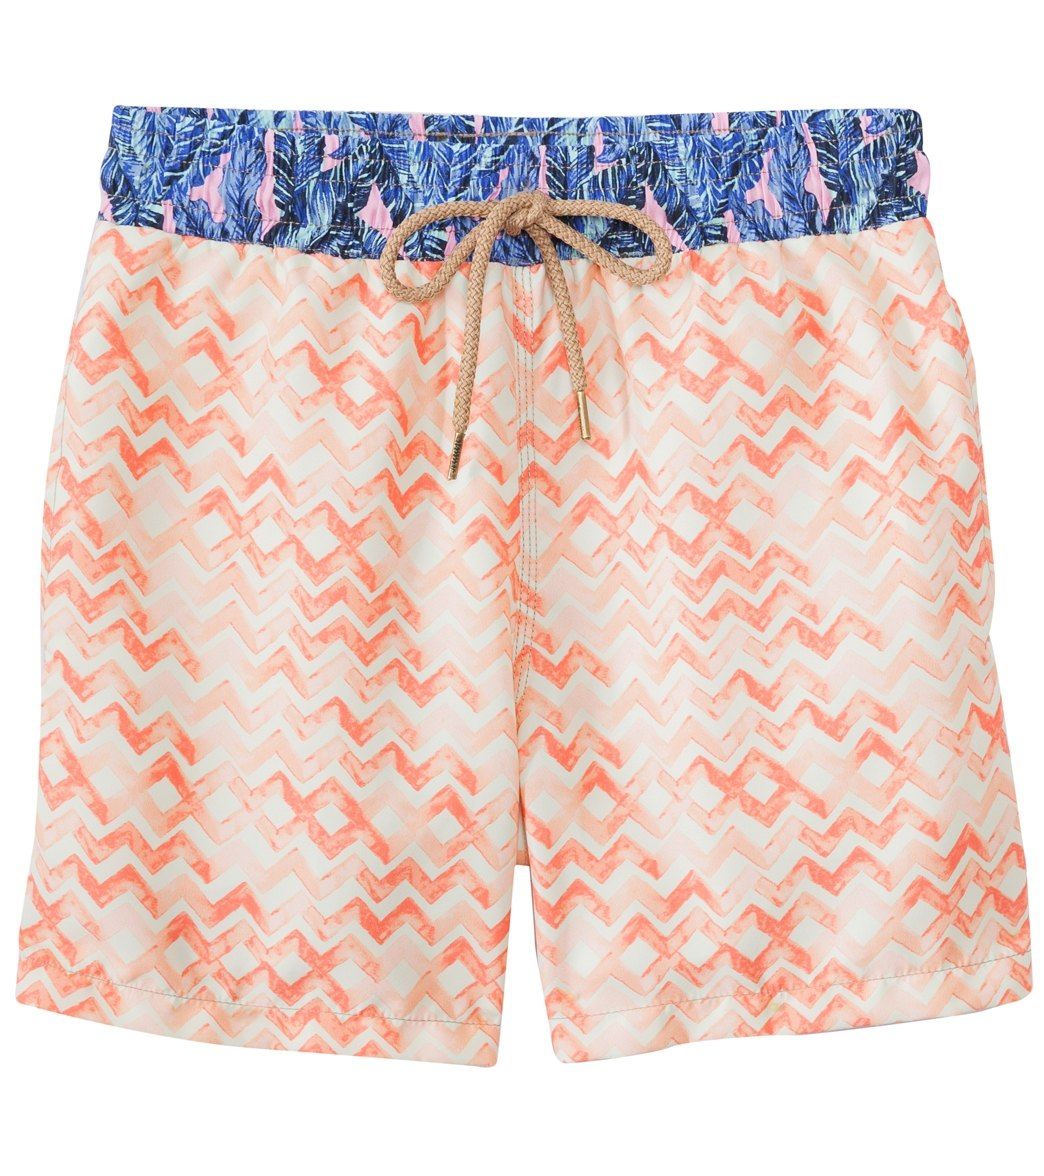 e08356e175 Maaji Men's Watercolor Chevron Swim Trunk at SwimOutlet.com ...